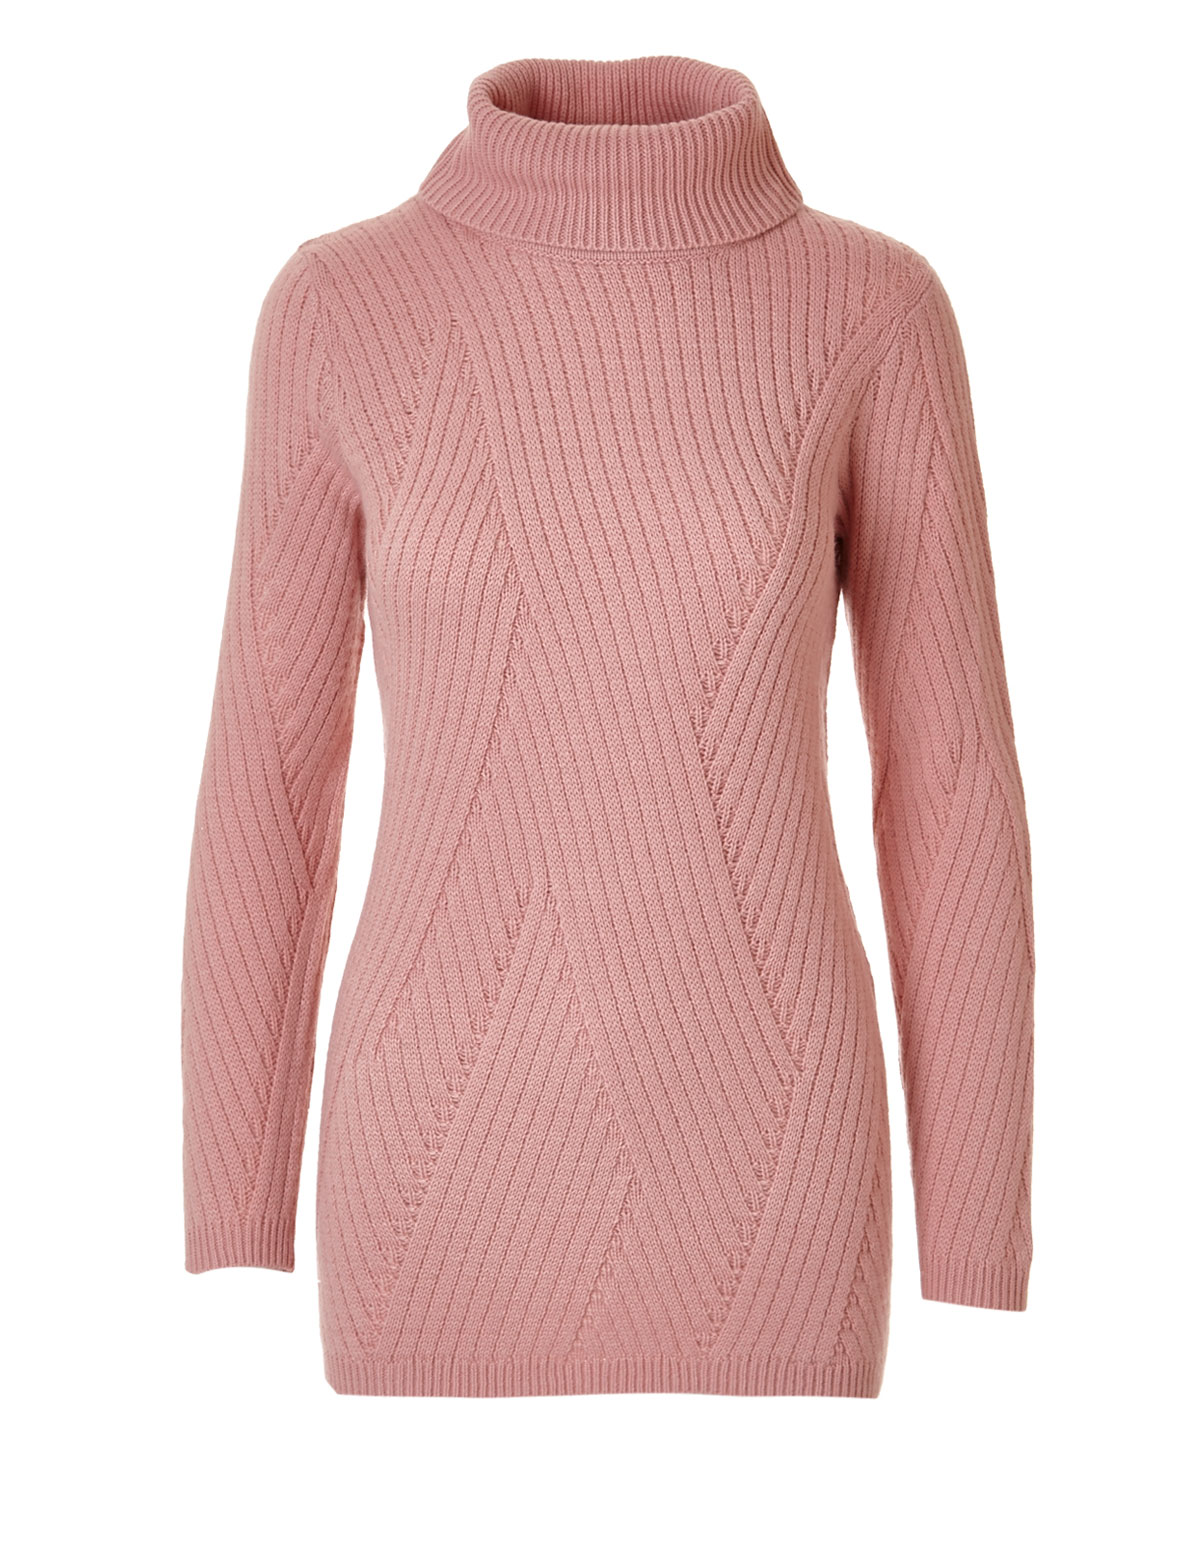 Pink Turtleneck Pullover Sweater | Cleo